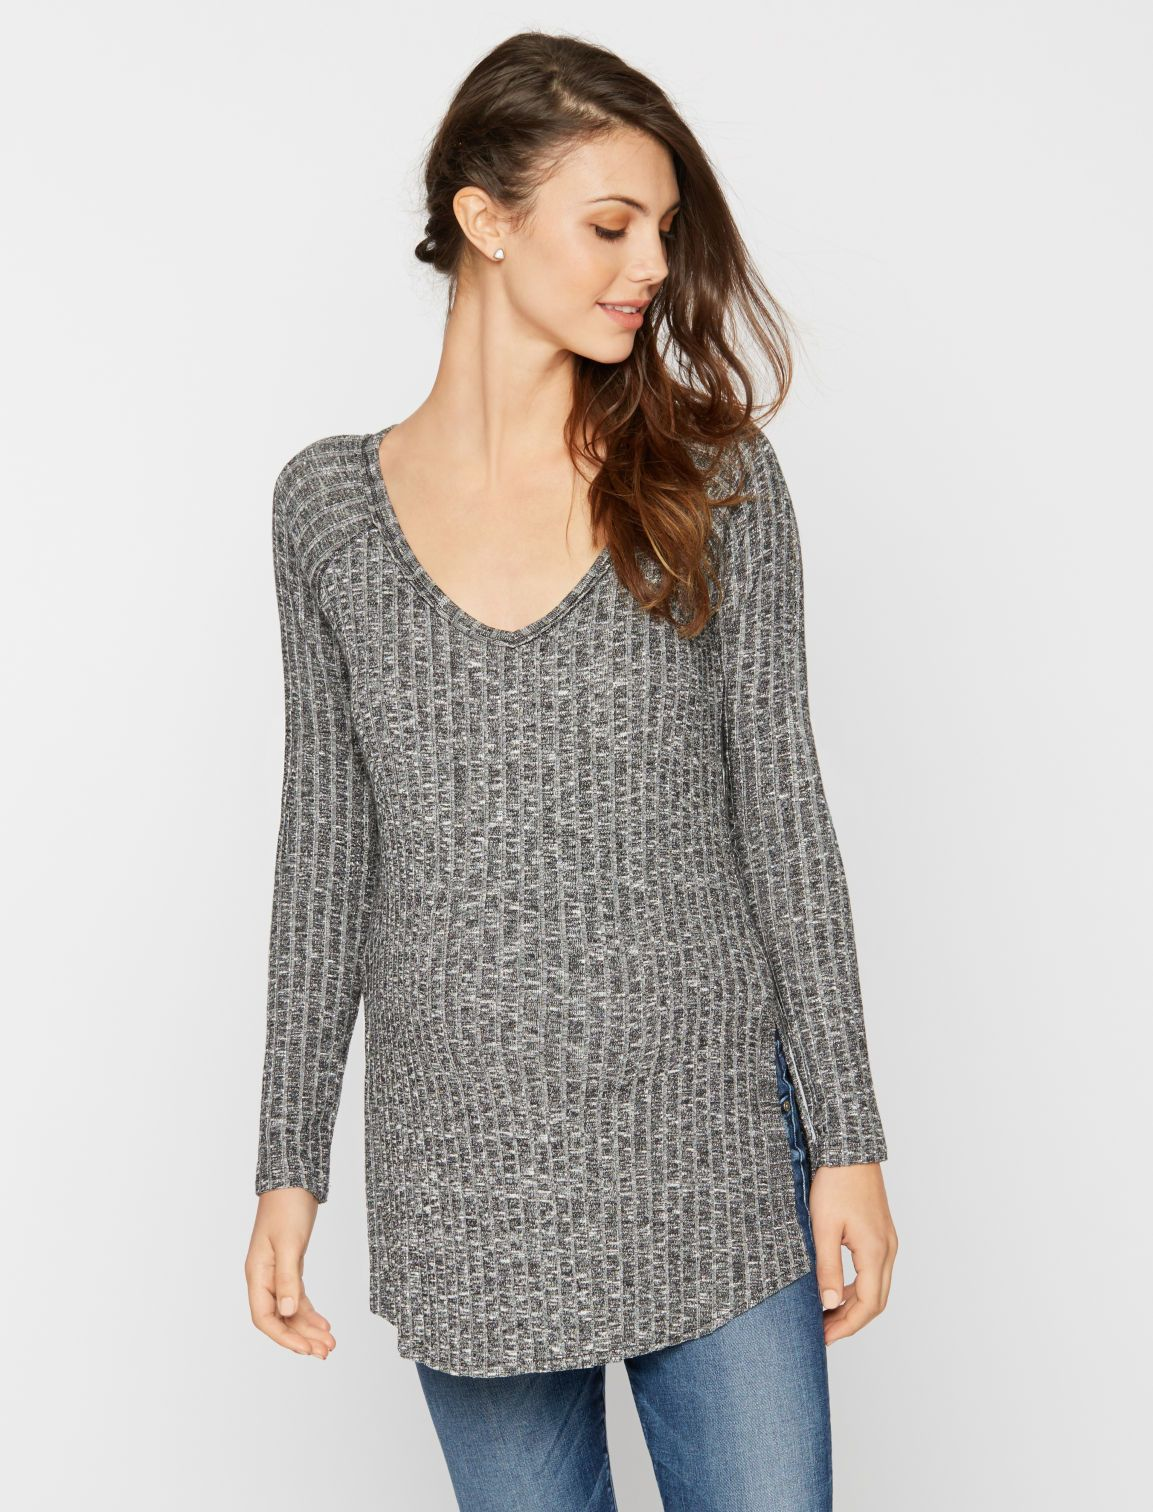 a4071a54a226f scoop neck raglan sleeve maternity sweater by A Pea in the Pod   5 Wardrobe  Secrets for Surviving the First Trimester. The lightweight ...